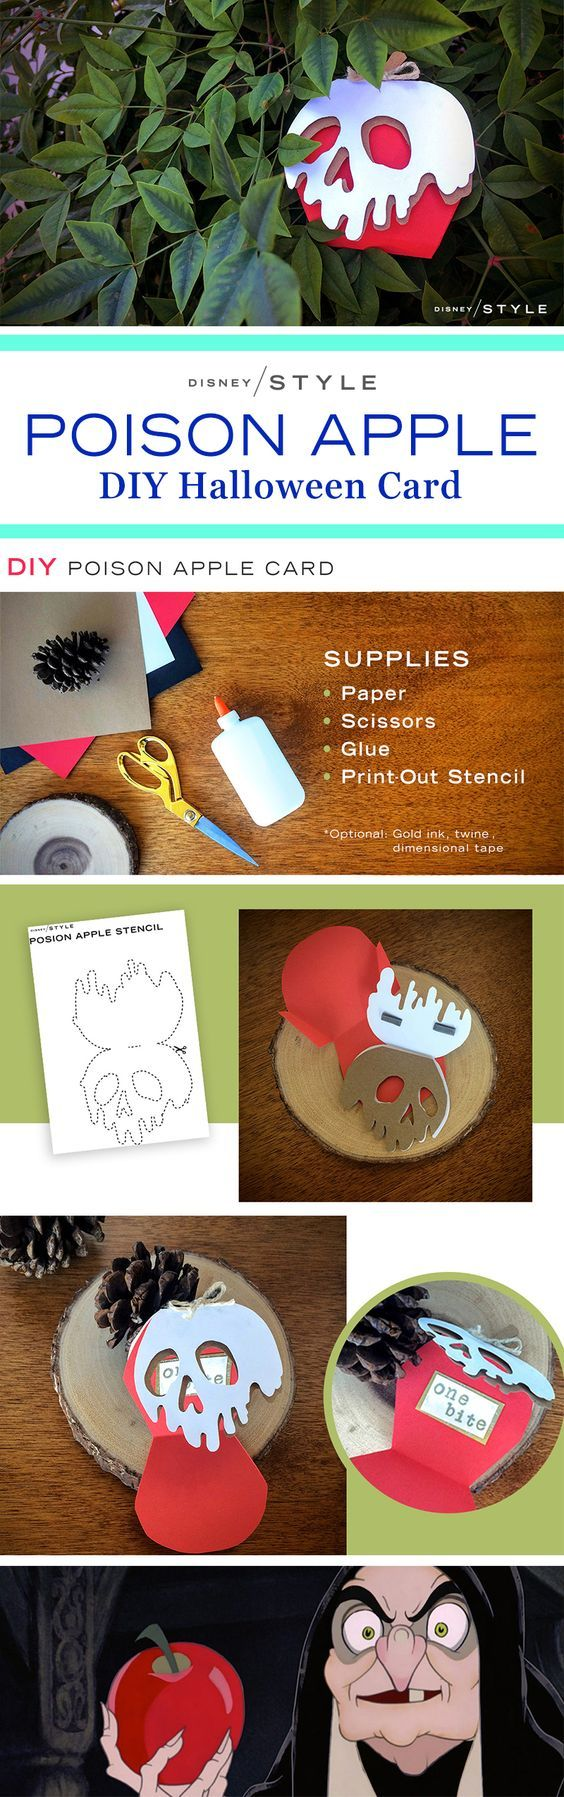 DIY Poison Apple Halloween Card | One bite of this Snow White-inspired Halloween craft, and all your DIY dreams will come true! | Seasonal Disney stationery inspiration | [ http://di.sn/60088DmSE ]